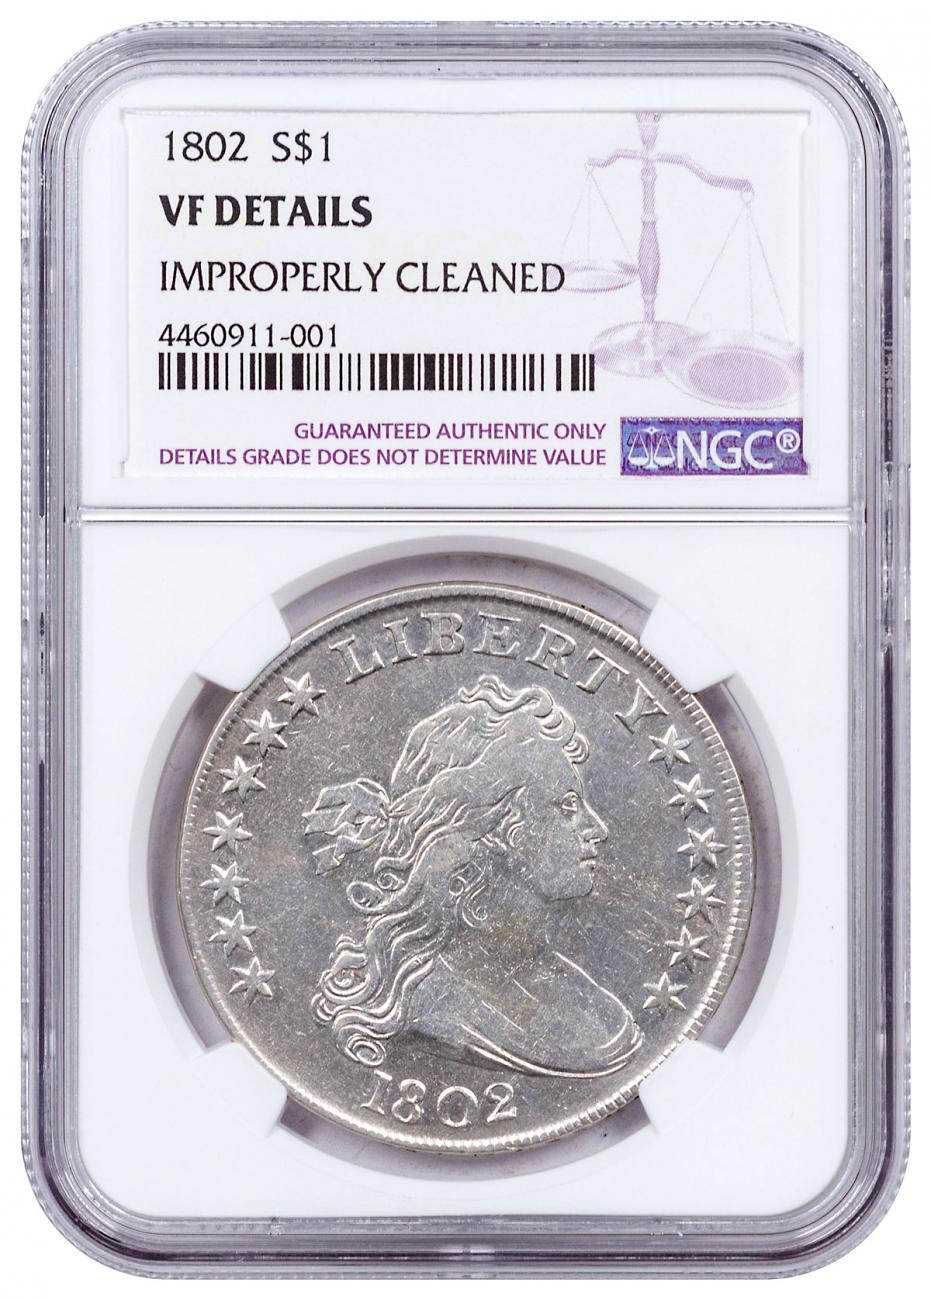 1802 Silver Draped Bust Dollar Improperly Cleaned NGC VF Details